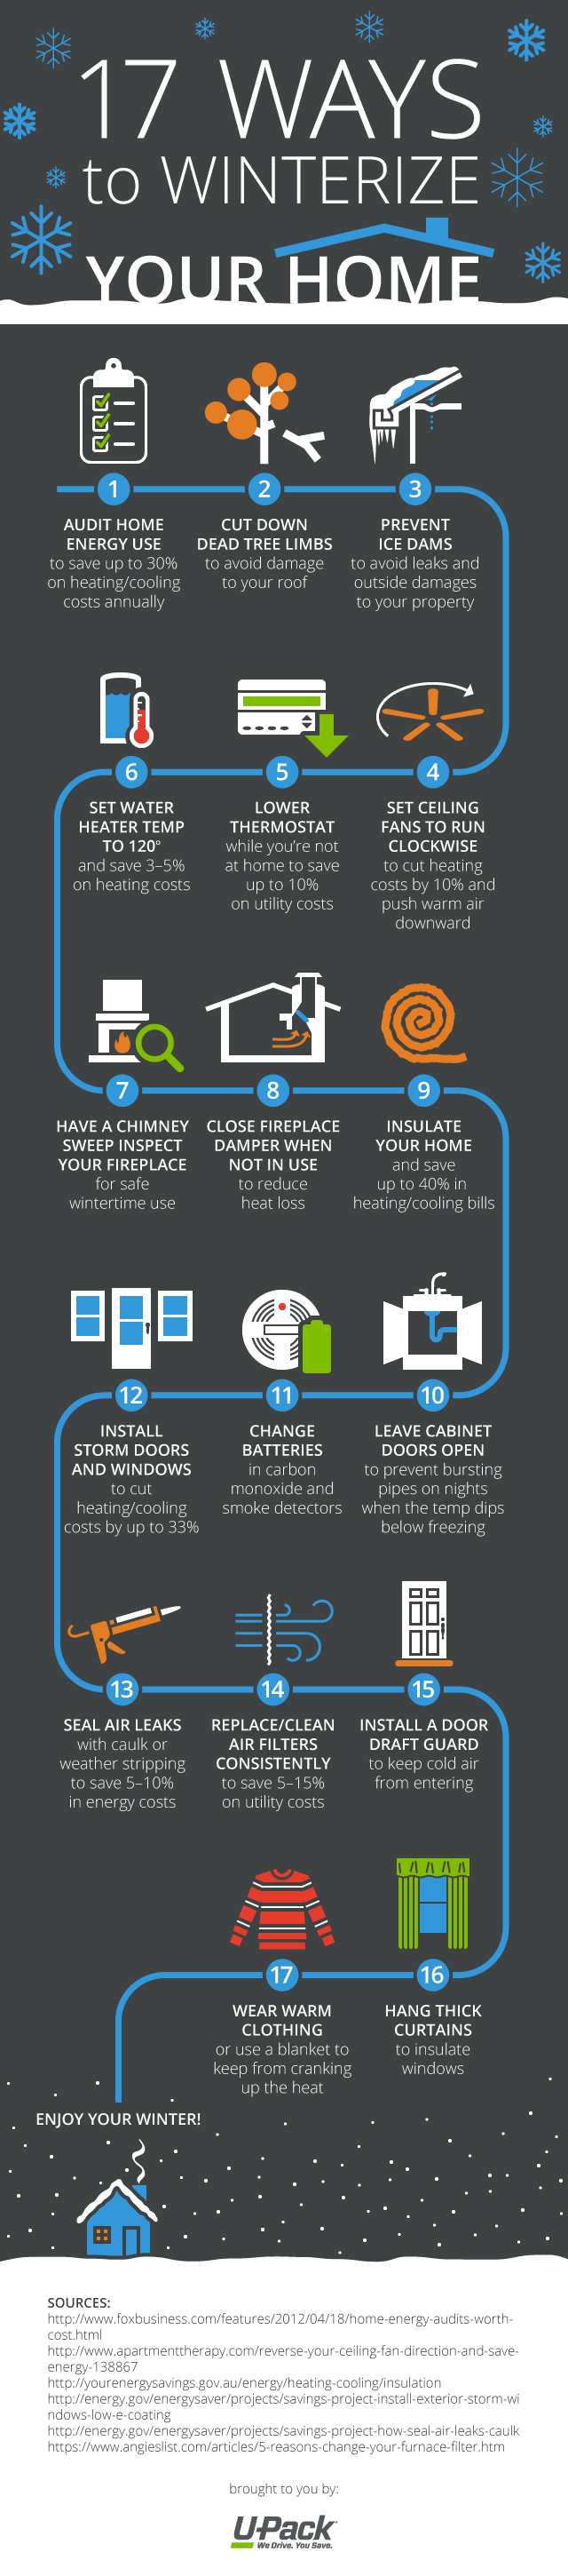 17 ways to winterize your home infographic